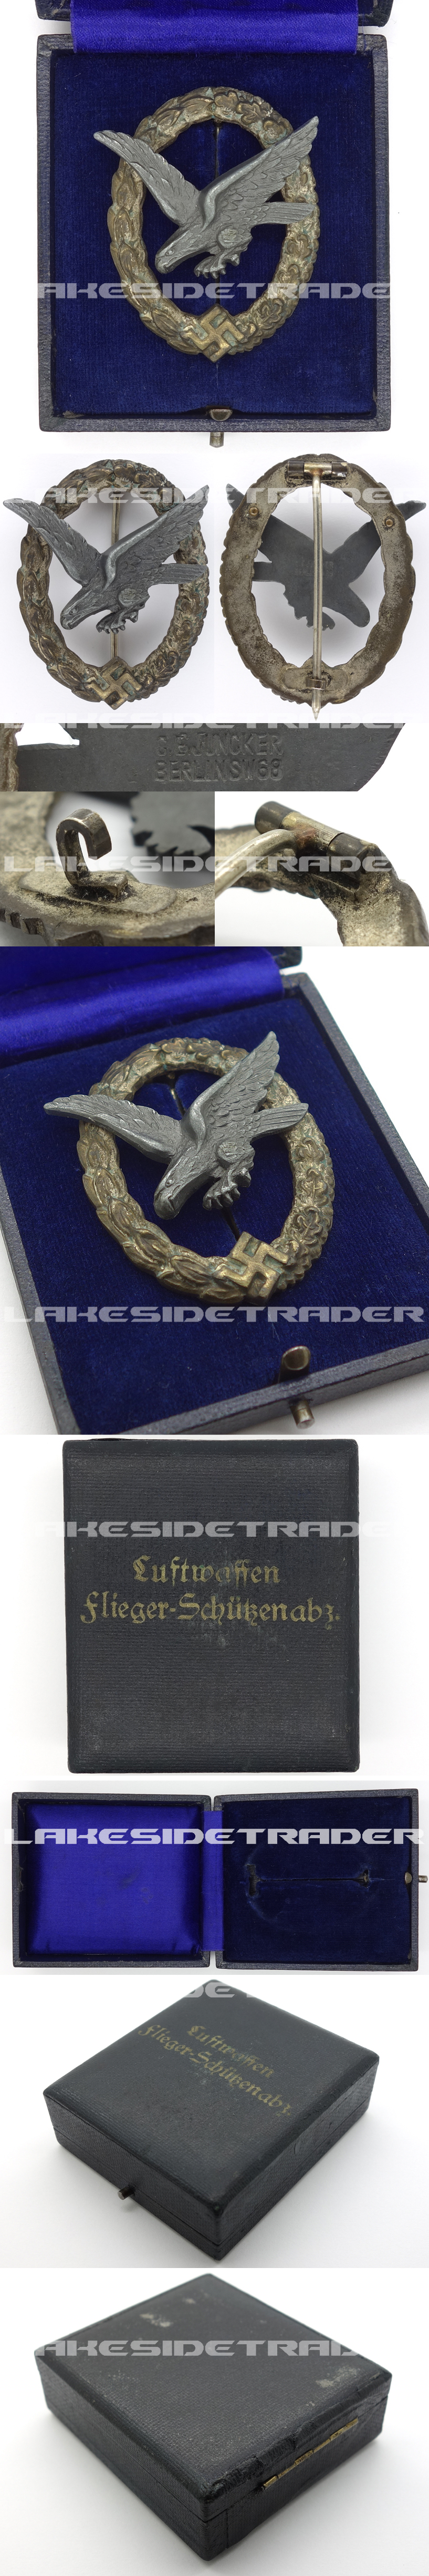 Cased Luftwaffe Air Gunner Badge by Juncker